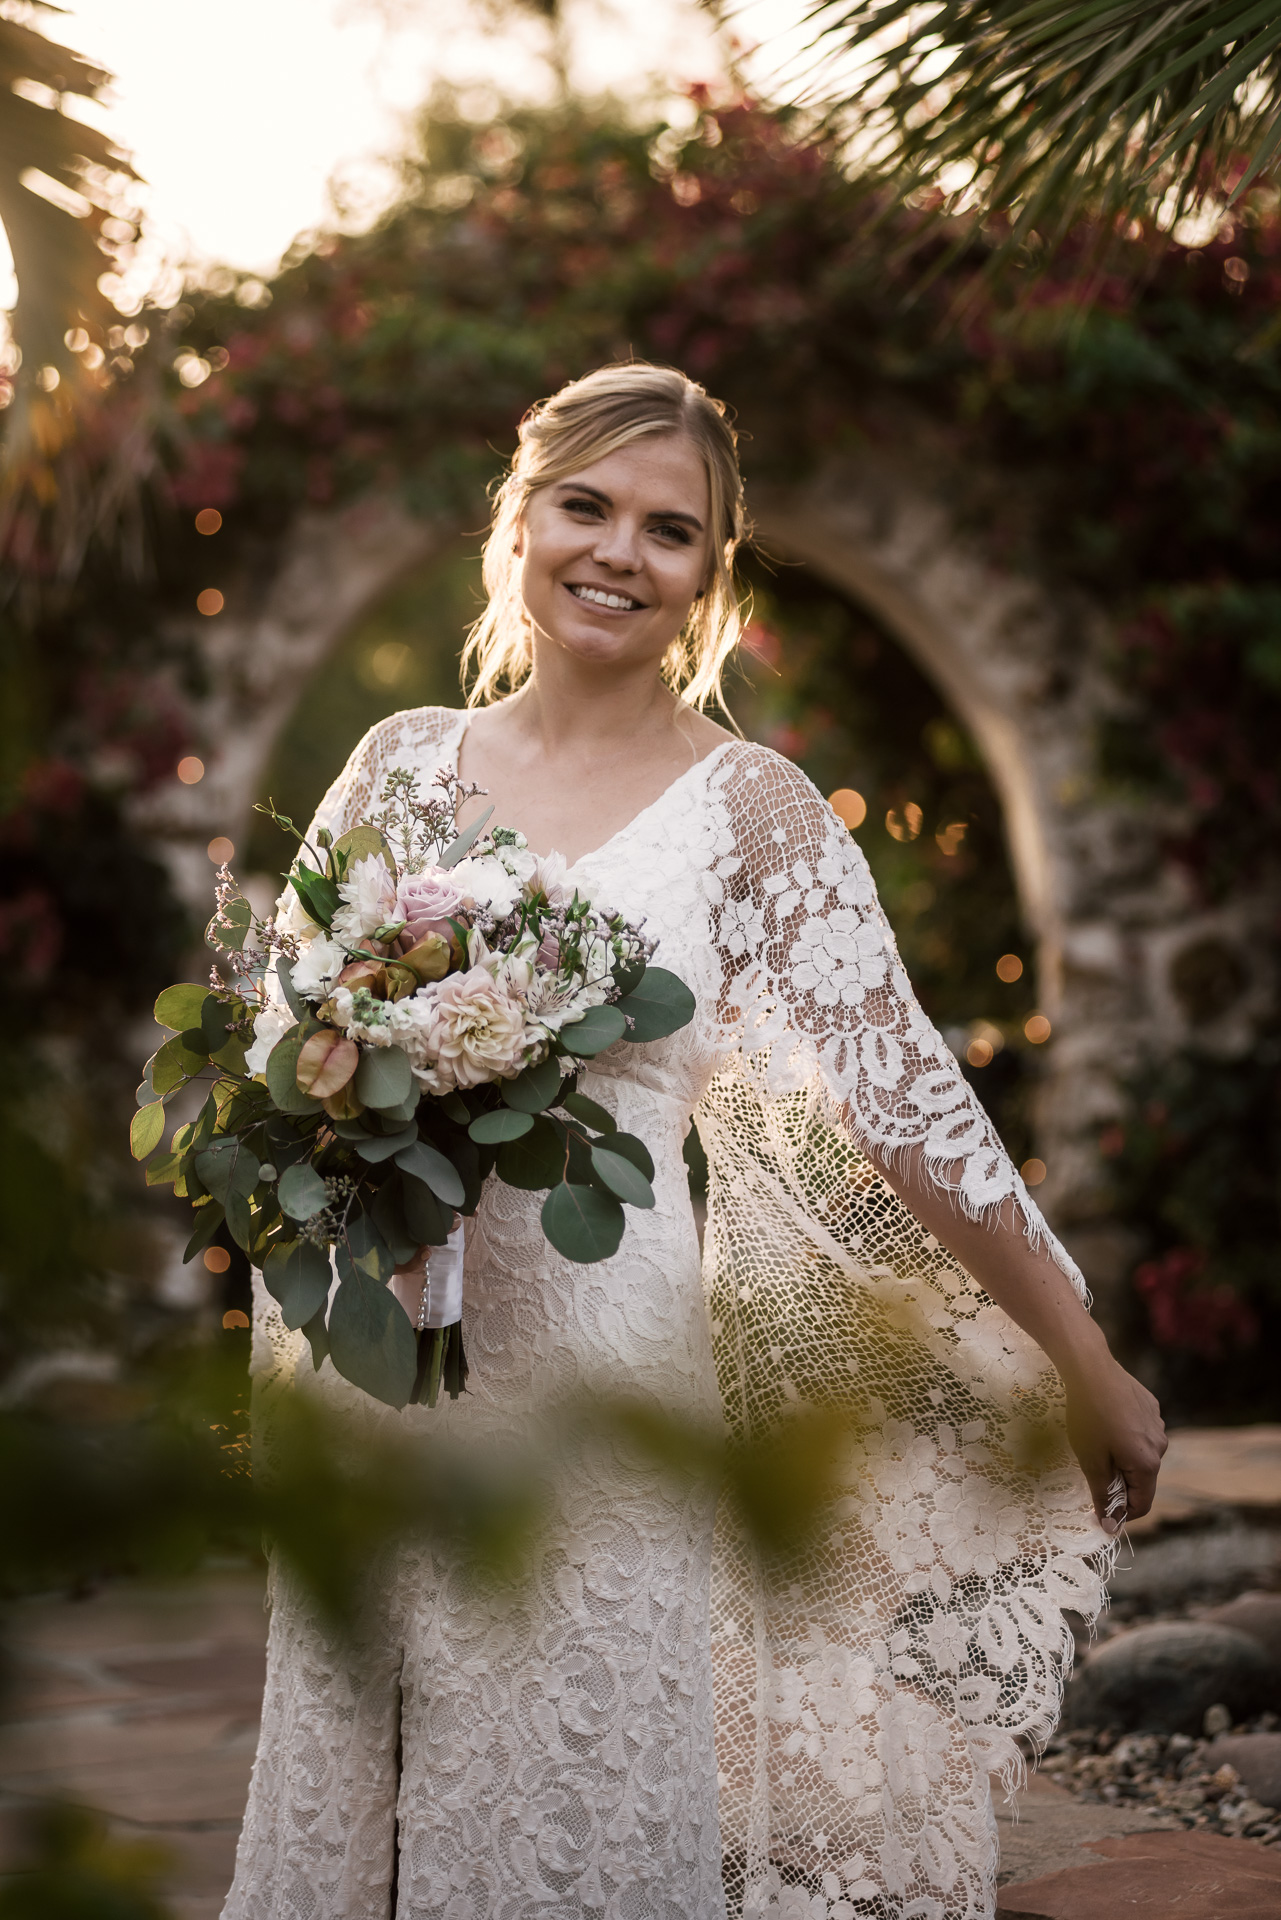 bride models her beautiful lace dress at sunset captured by photographer during romantic wedding at the historic Leo Carrillo Ranch in Carlsbad California